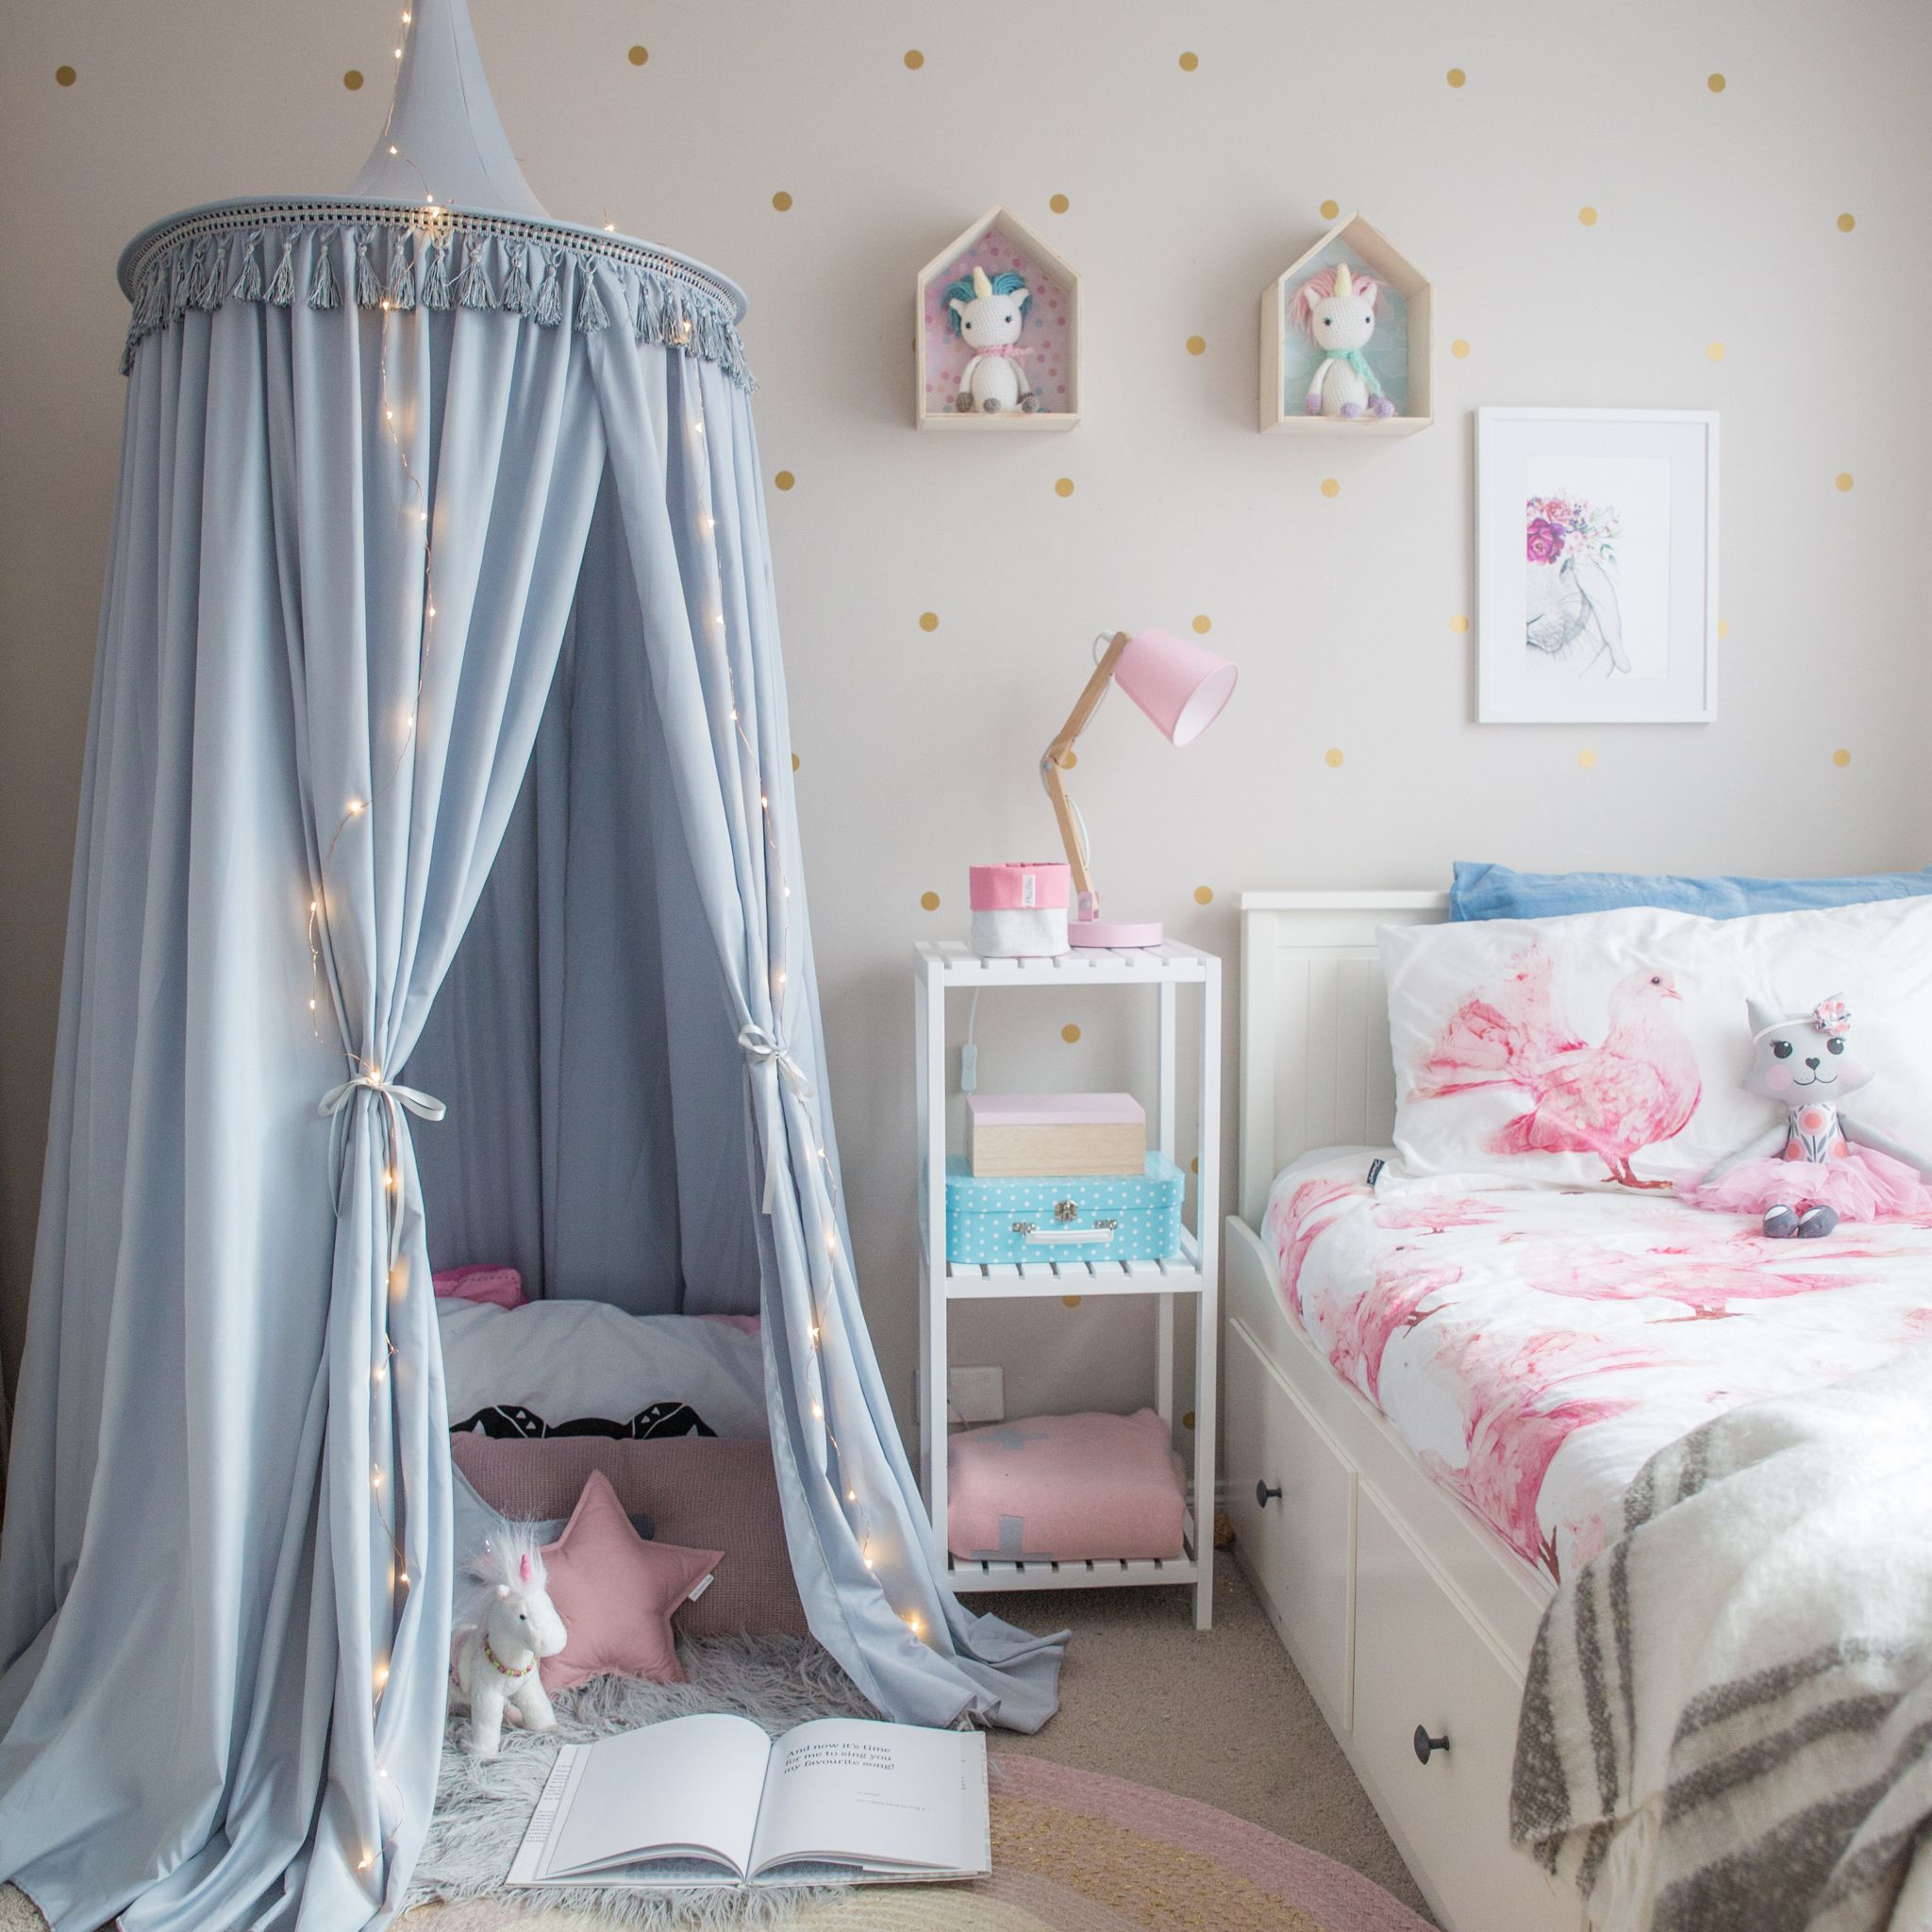 Little Girl Canopy Bed Ideas Kid 39s Hanging Play Canopy Tent In Light Grey Gorgeous